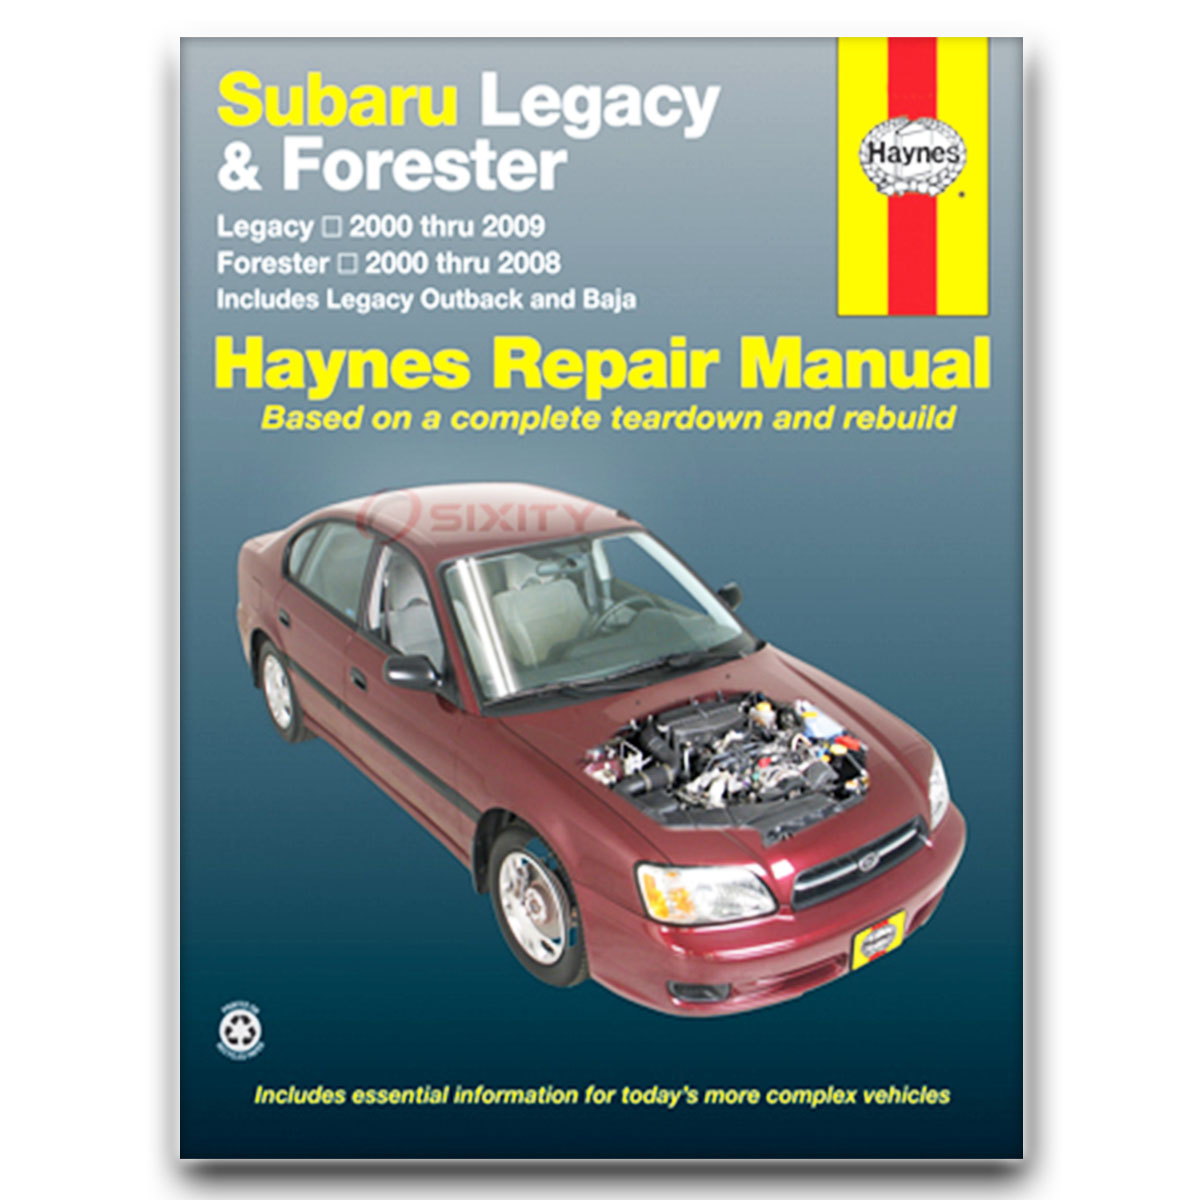 Haynes Repair Manual for Subaru Baja Sport Turbo Base Shop Service Garage ep